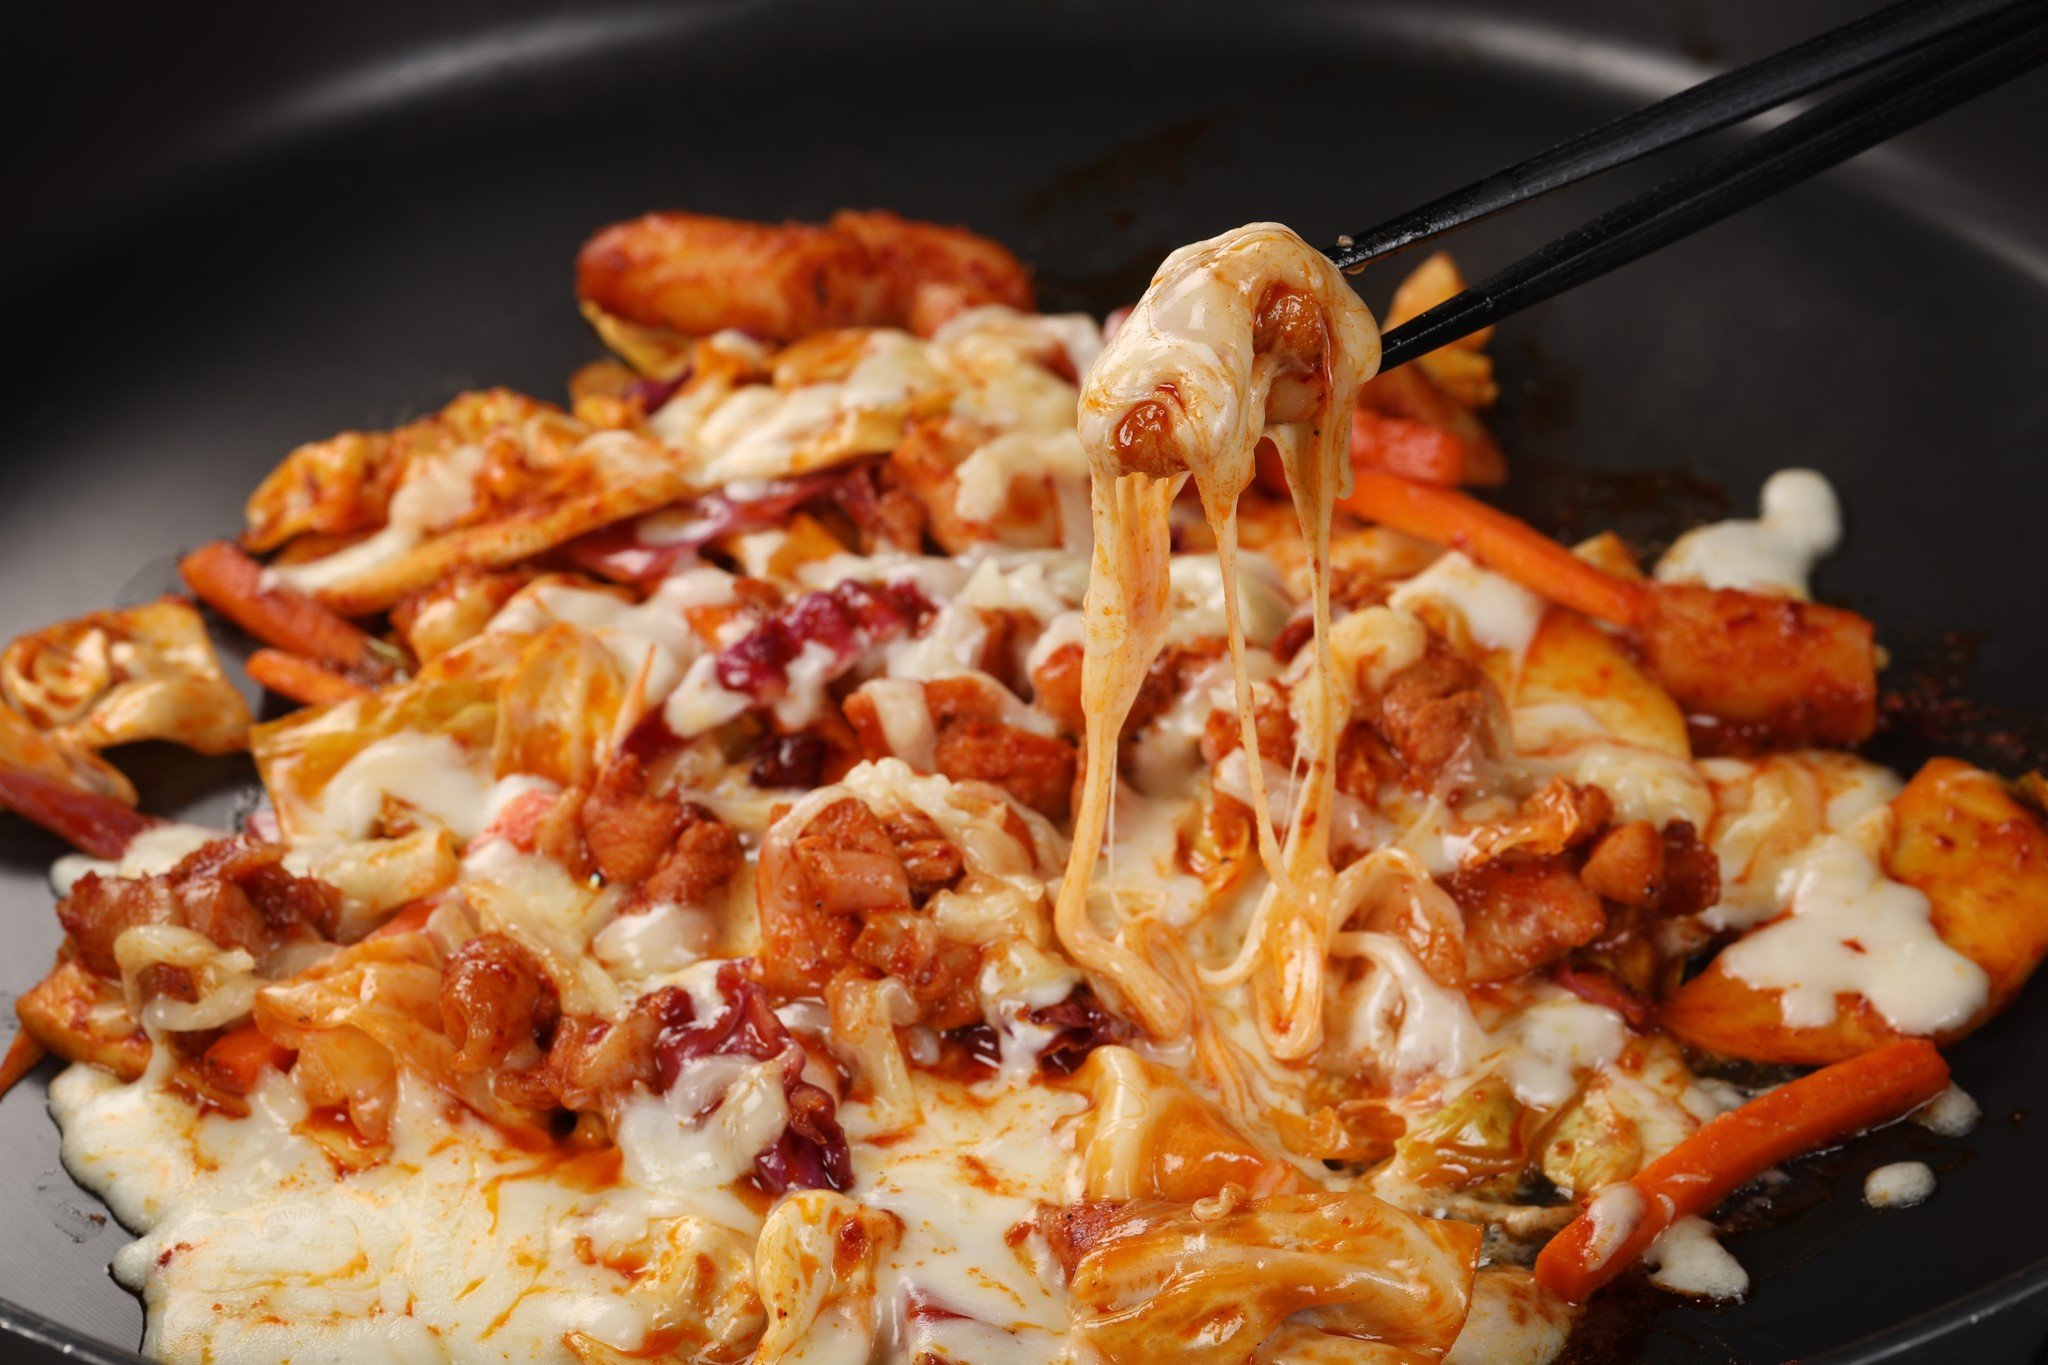 Stir-fried Chicken with cabbage and cheese